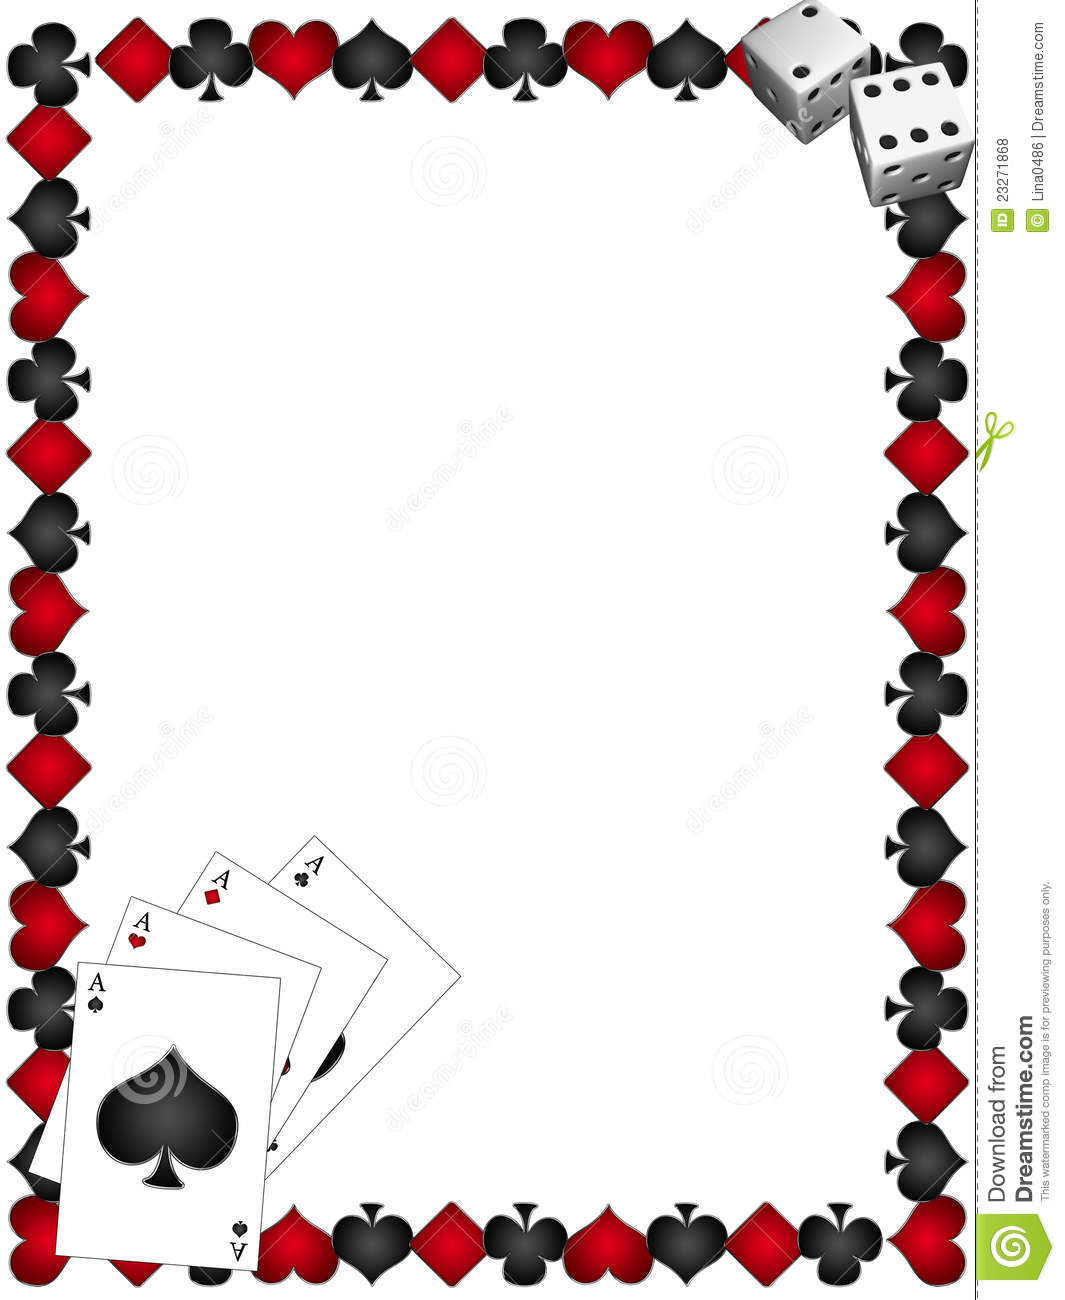 Playing Cards With Border Royalty Free Stock Photos   Image  23271868